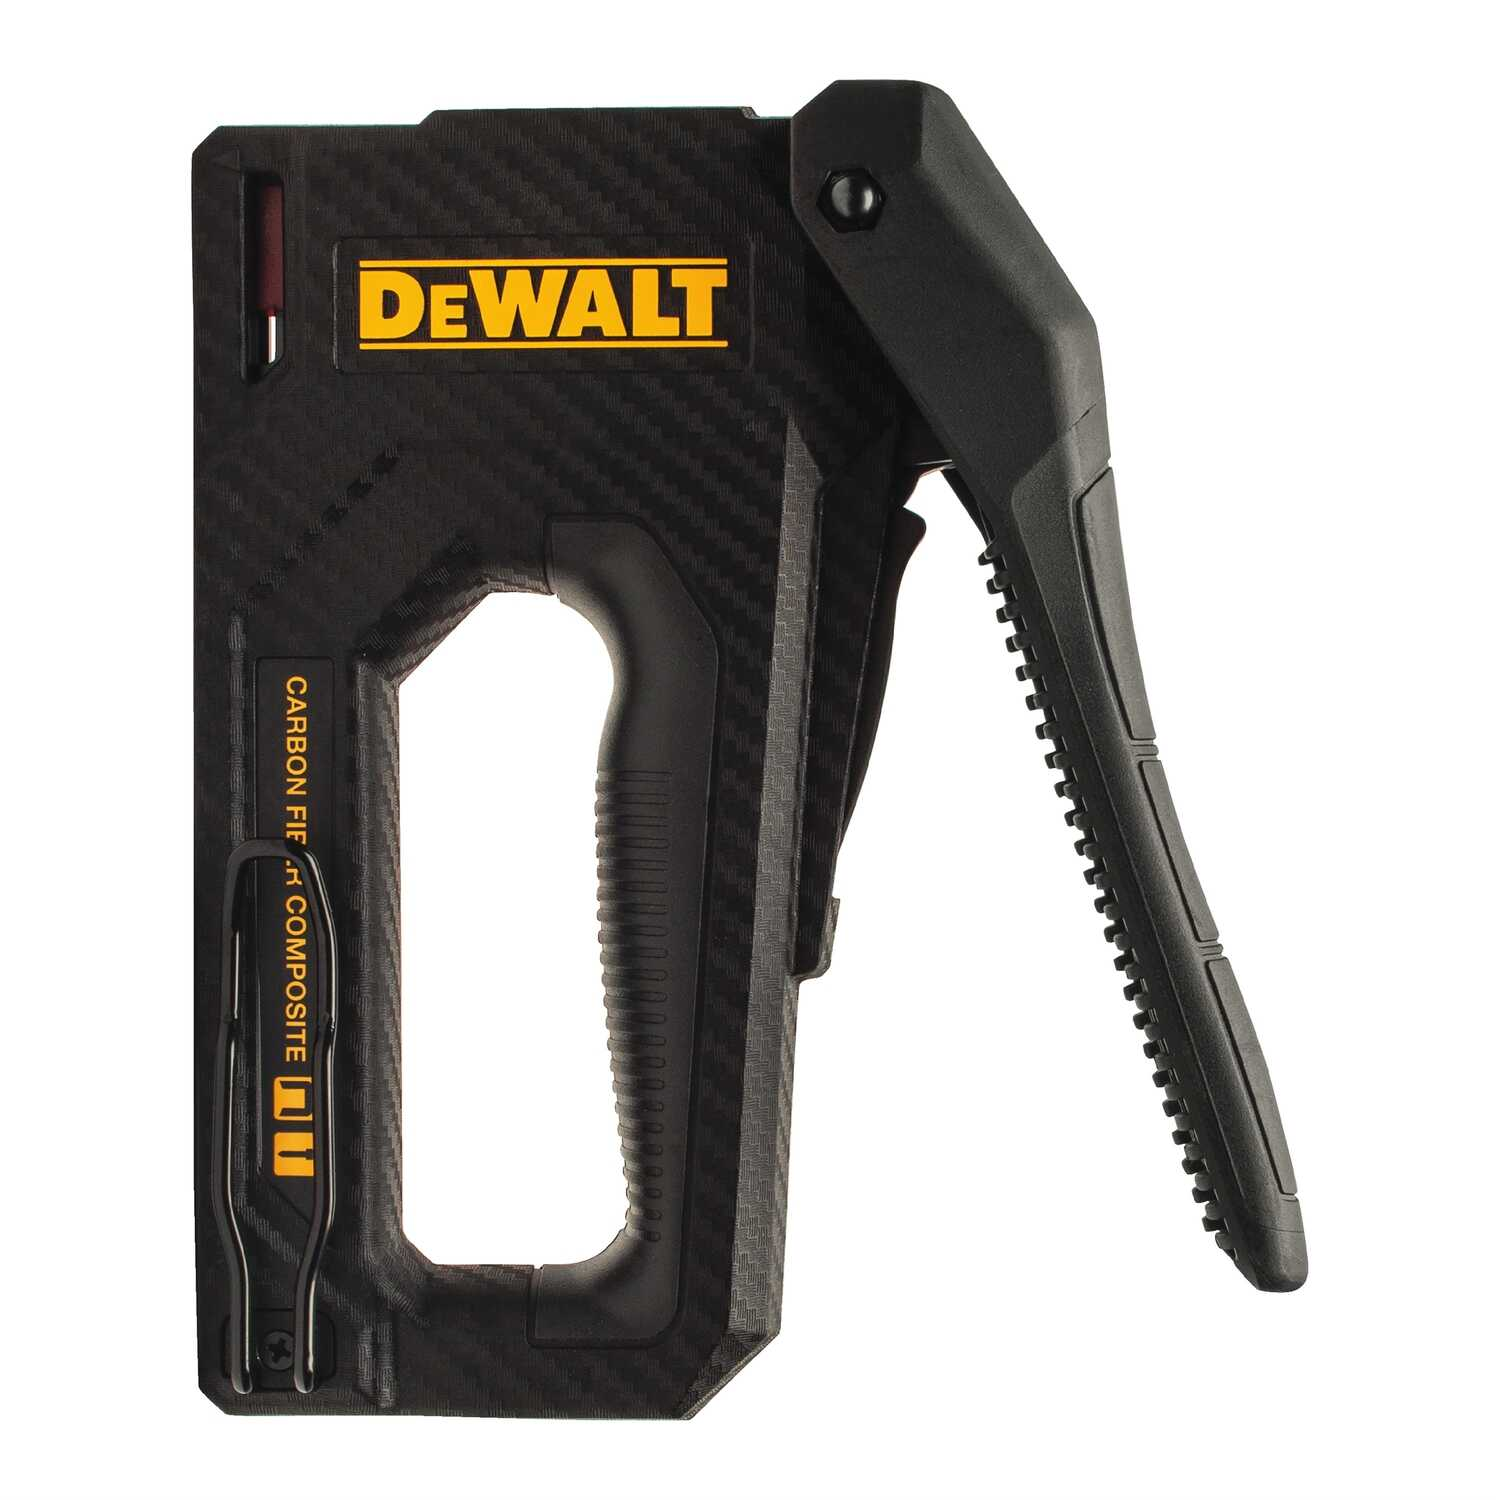 DeWalt  18 Ga. Carbon Fiber Composite Staple Gun  Yellow/Black